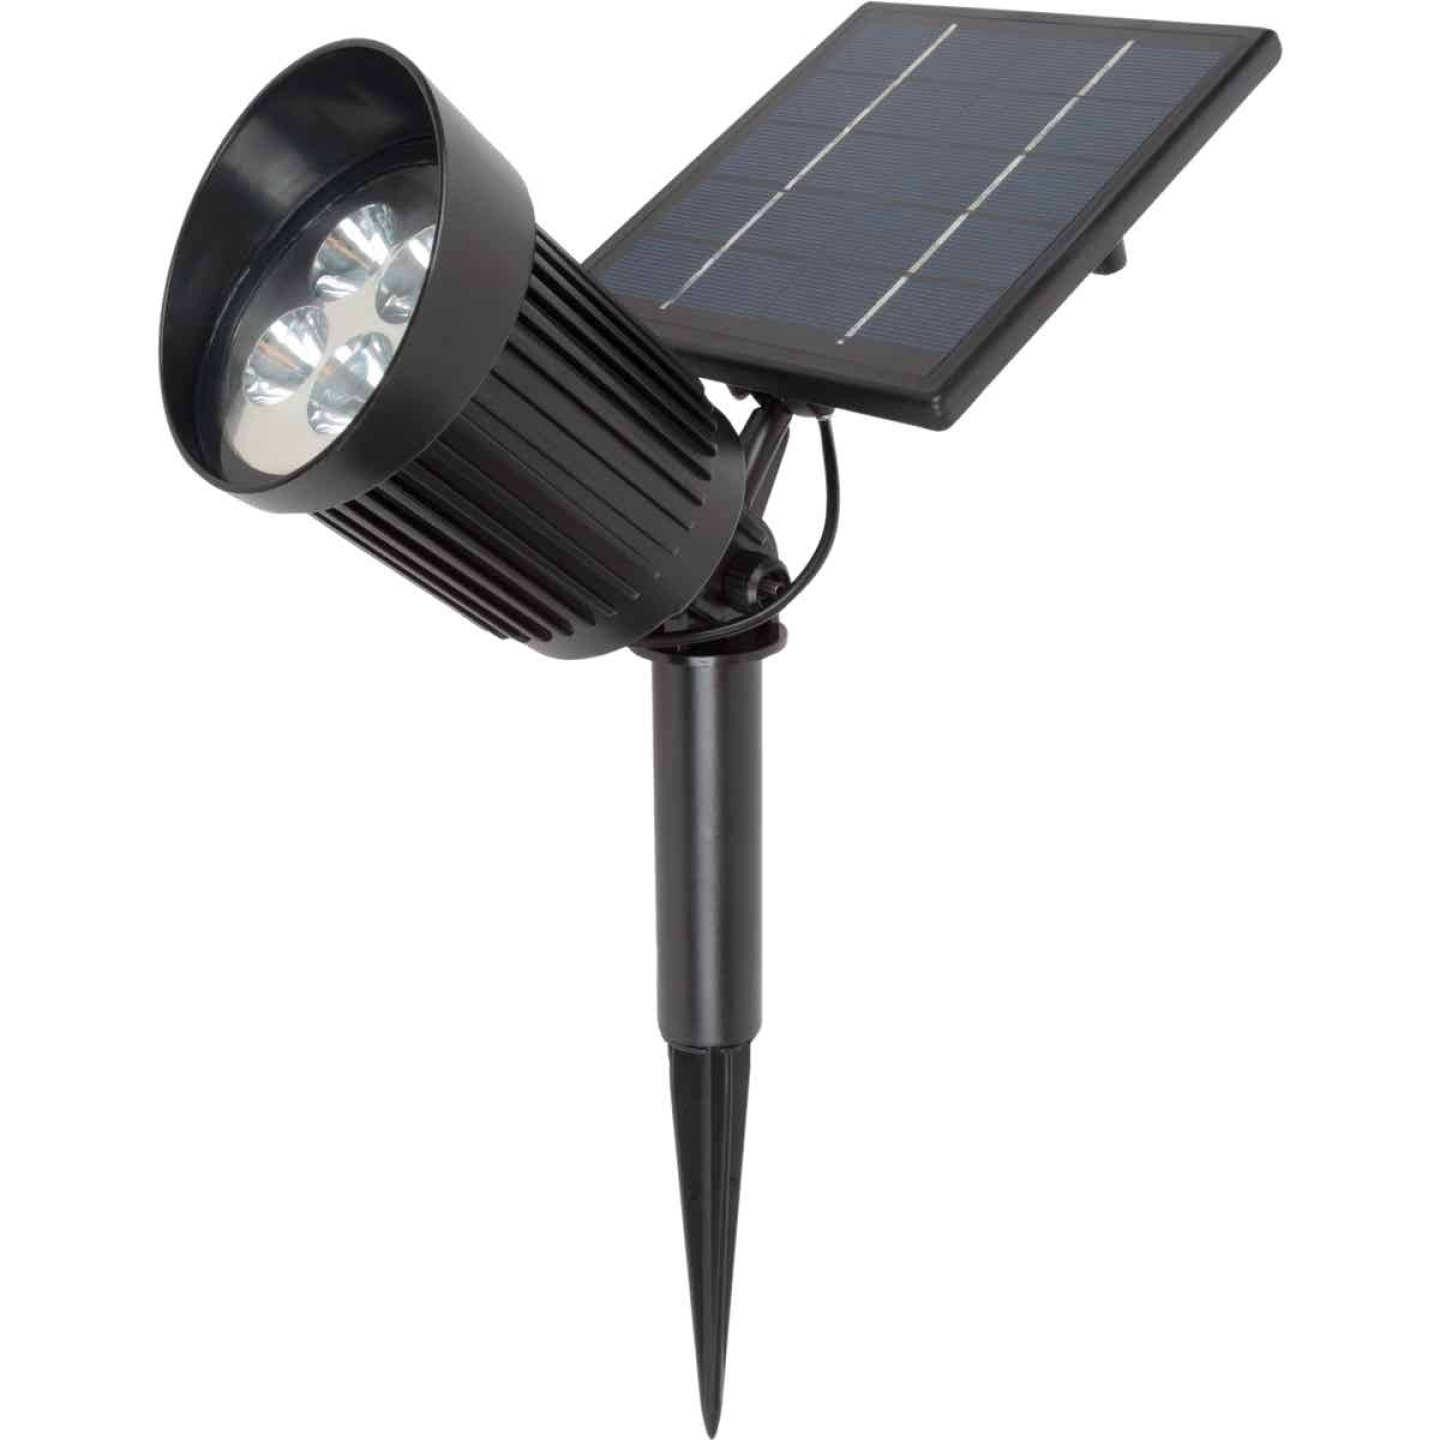 Fusion Black 8 SMD LED Up to 8-Hour Run Time Solar Spotlight Image 2